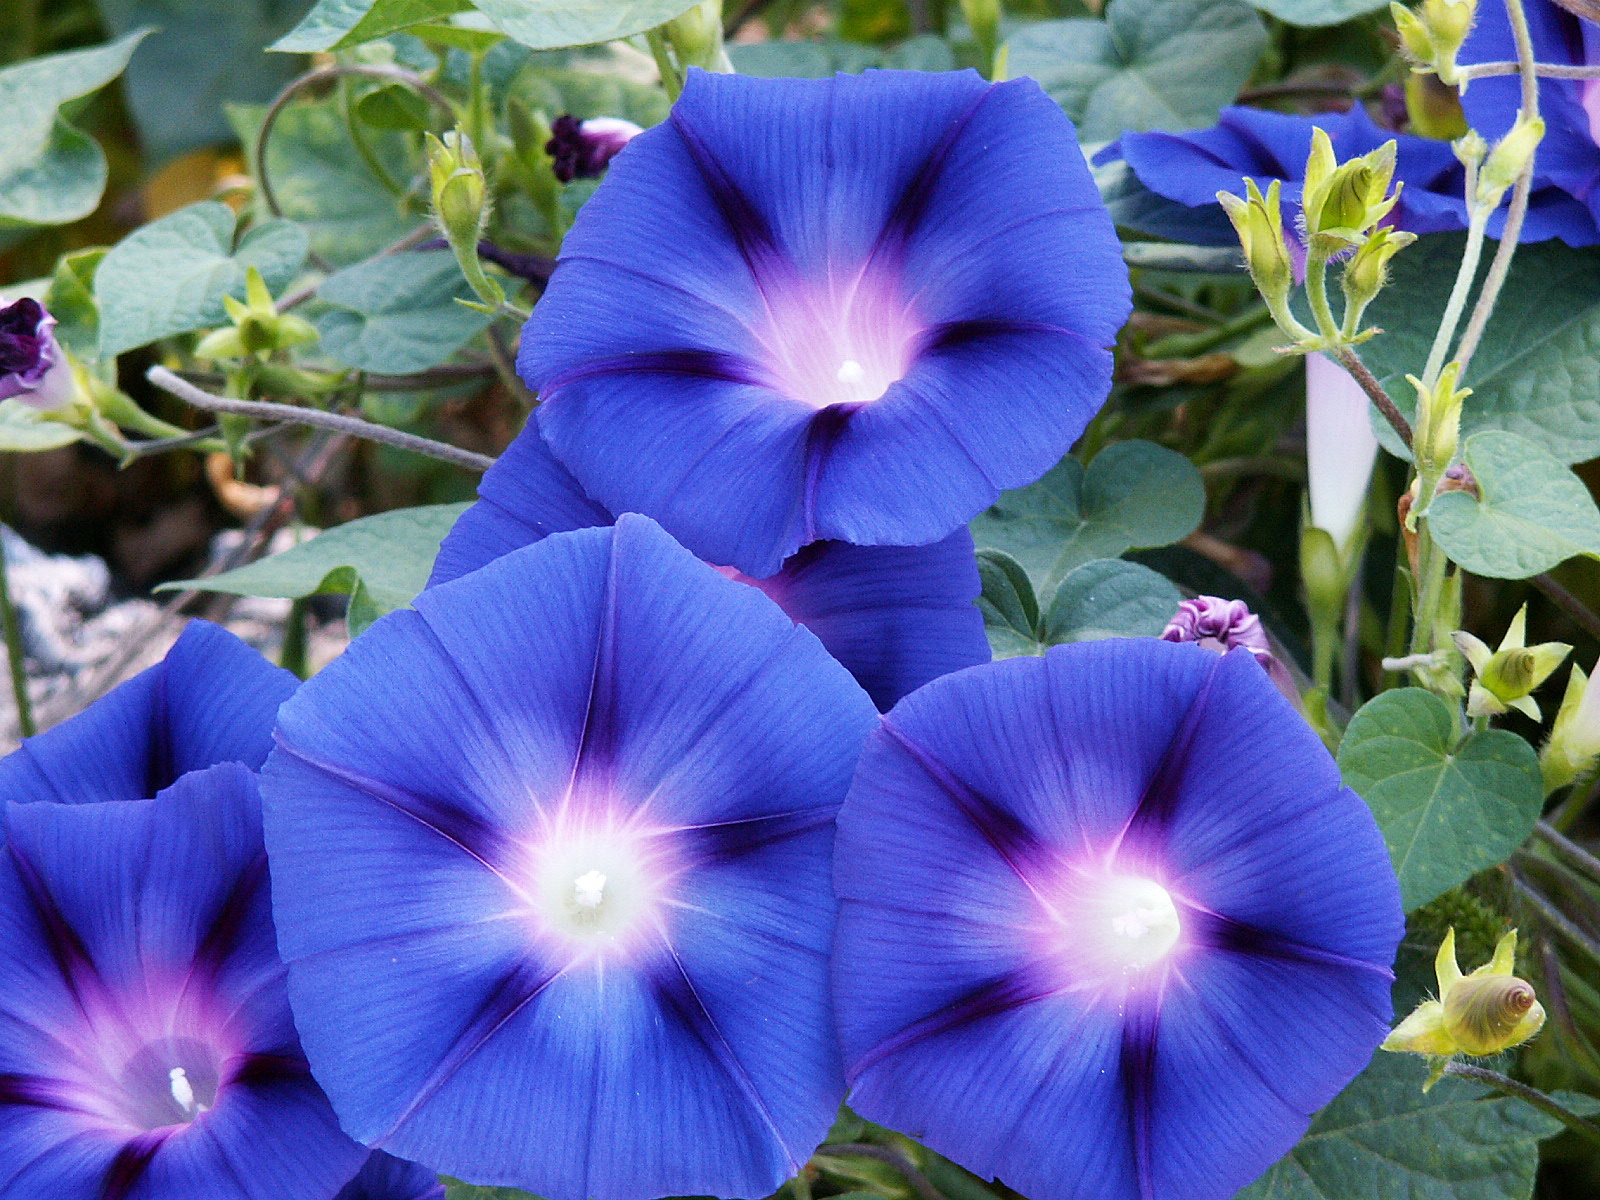 HQ Morning Glory Wallpapers | File 848.73Kb